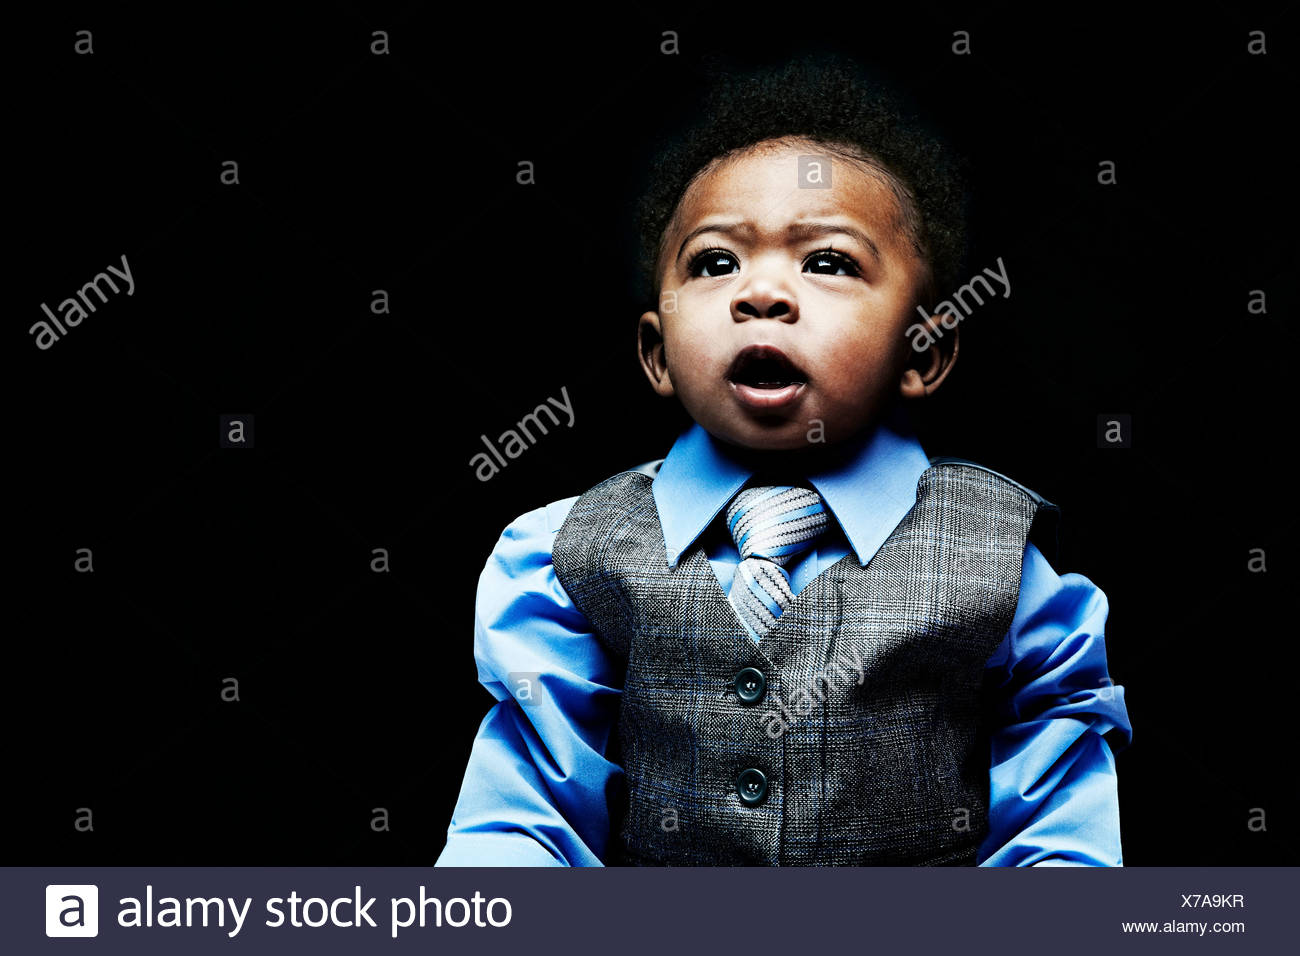 Portrait of baby boy wearing waistcoat, shirt and tie - Stock Image